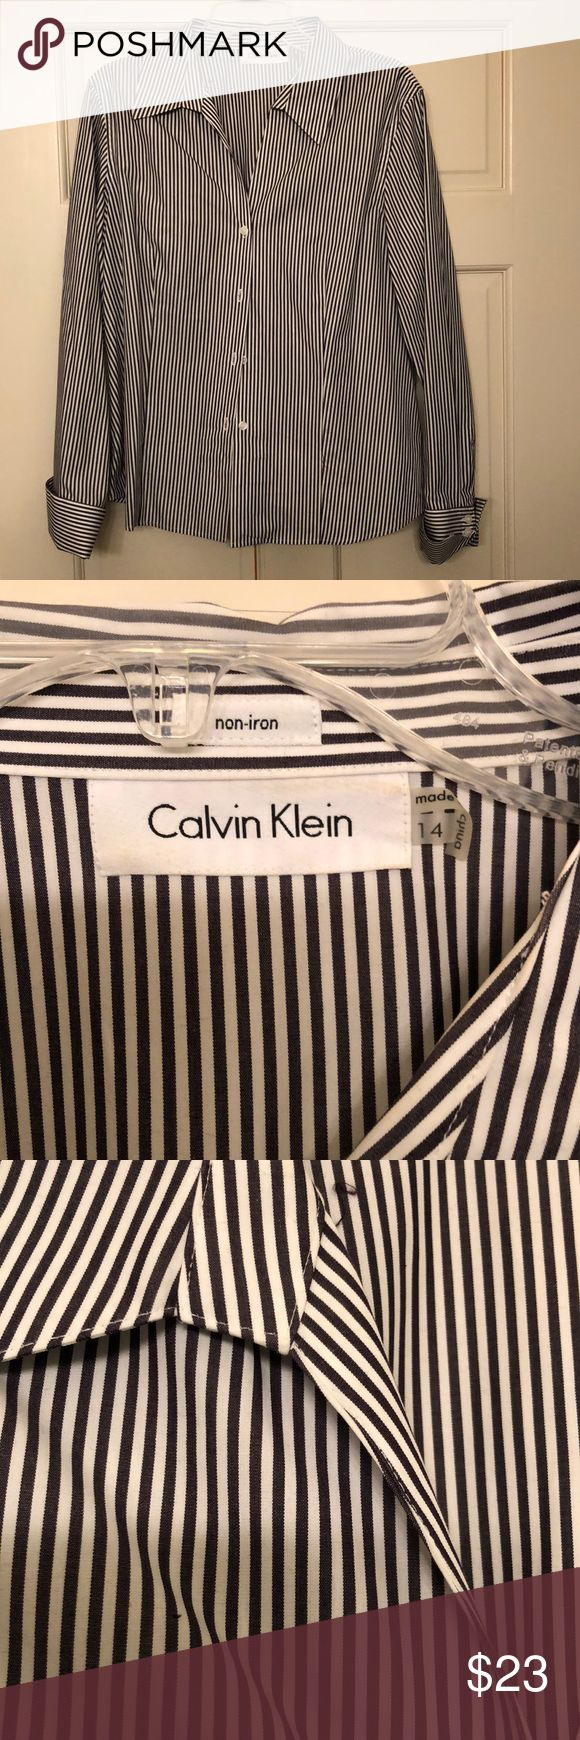 Calvin Klein Women's Button up Blouse/Dress Shirt Calvin Klein Women's Button up Blouse/Dress Shirt.  NWOT.  Great, crisp, no-iron dress shirt.  Pleated side for a nice, contoured fit. 100% cotton. Dark gray stripes.  Would look great under suit jacket or with dress pants or skirt for a nice, professional look. Non-smoking home Calvin Klein Tops Button Down Shirts